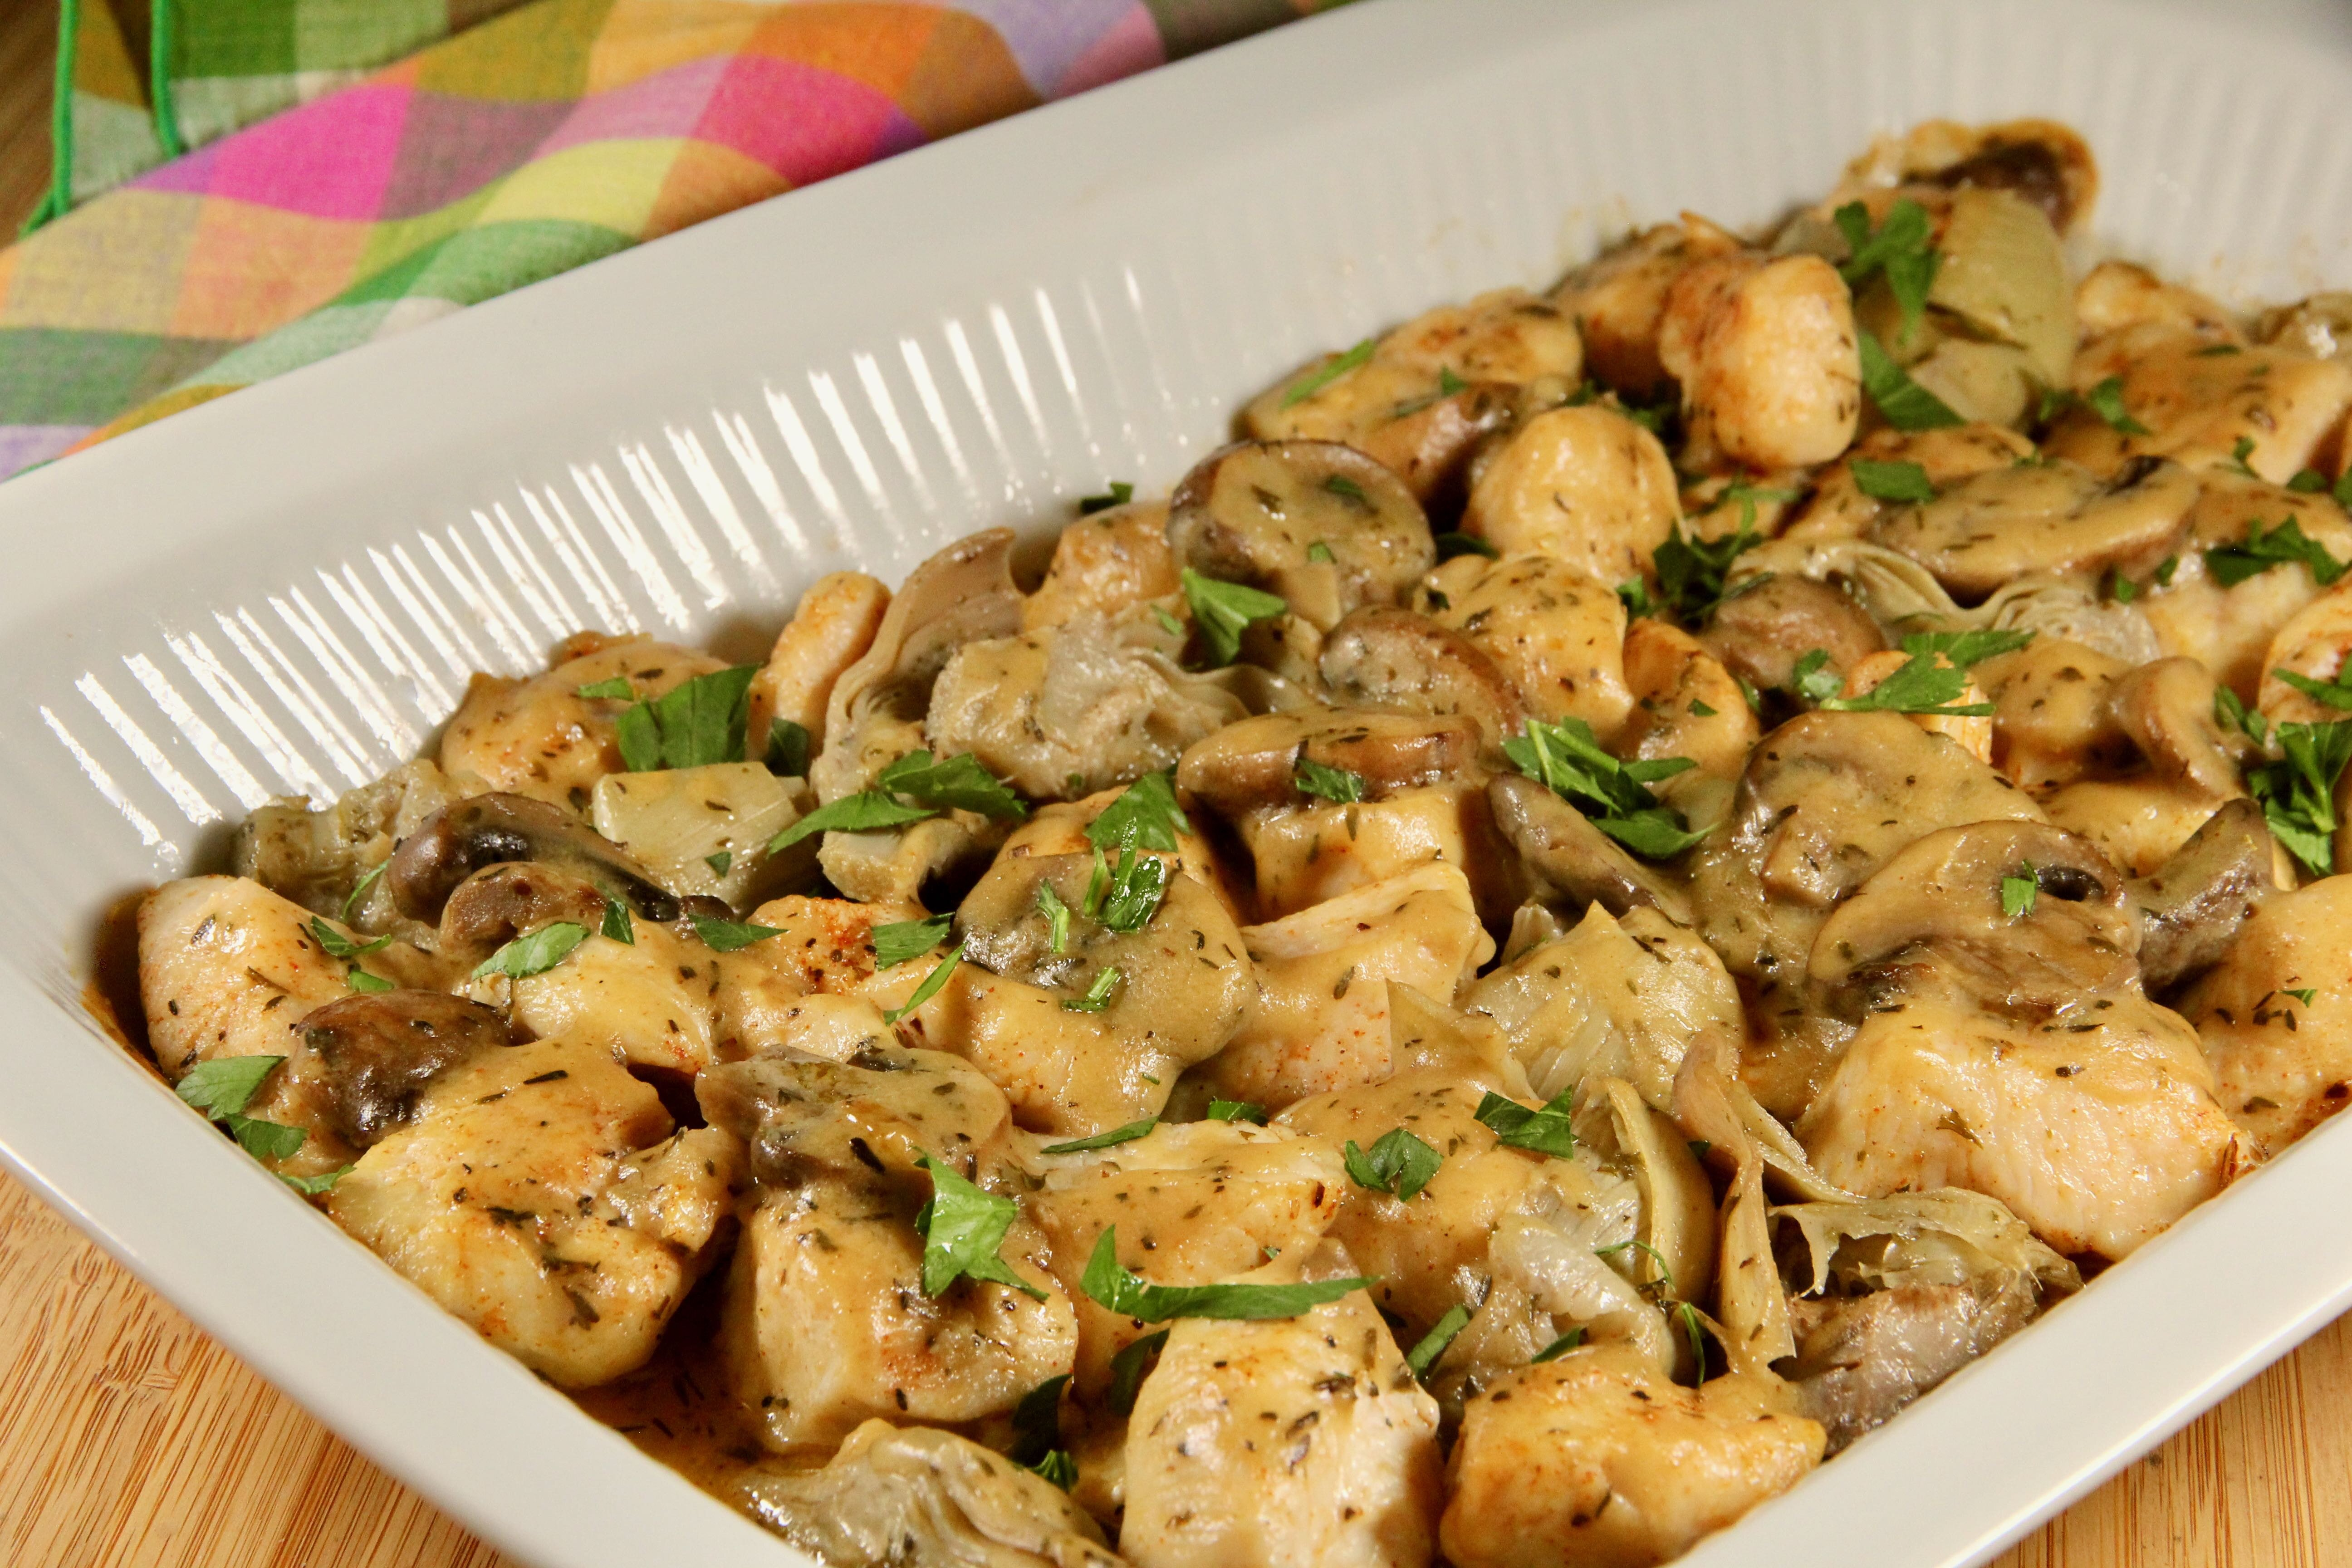 Chicken with Artichokes and Mushrooms